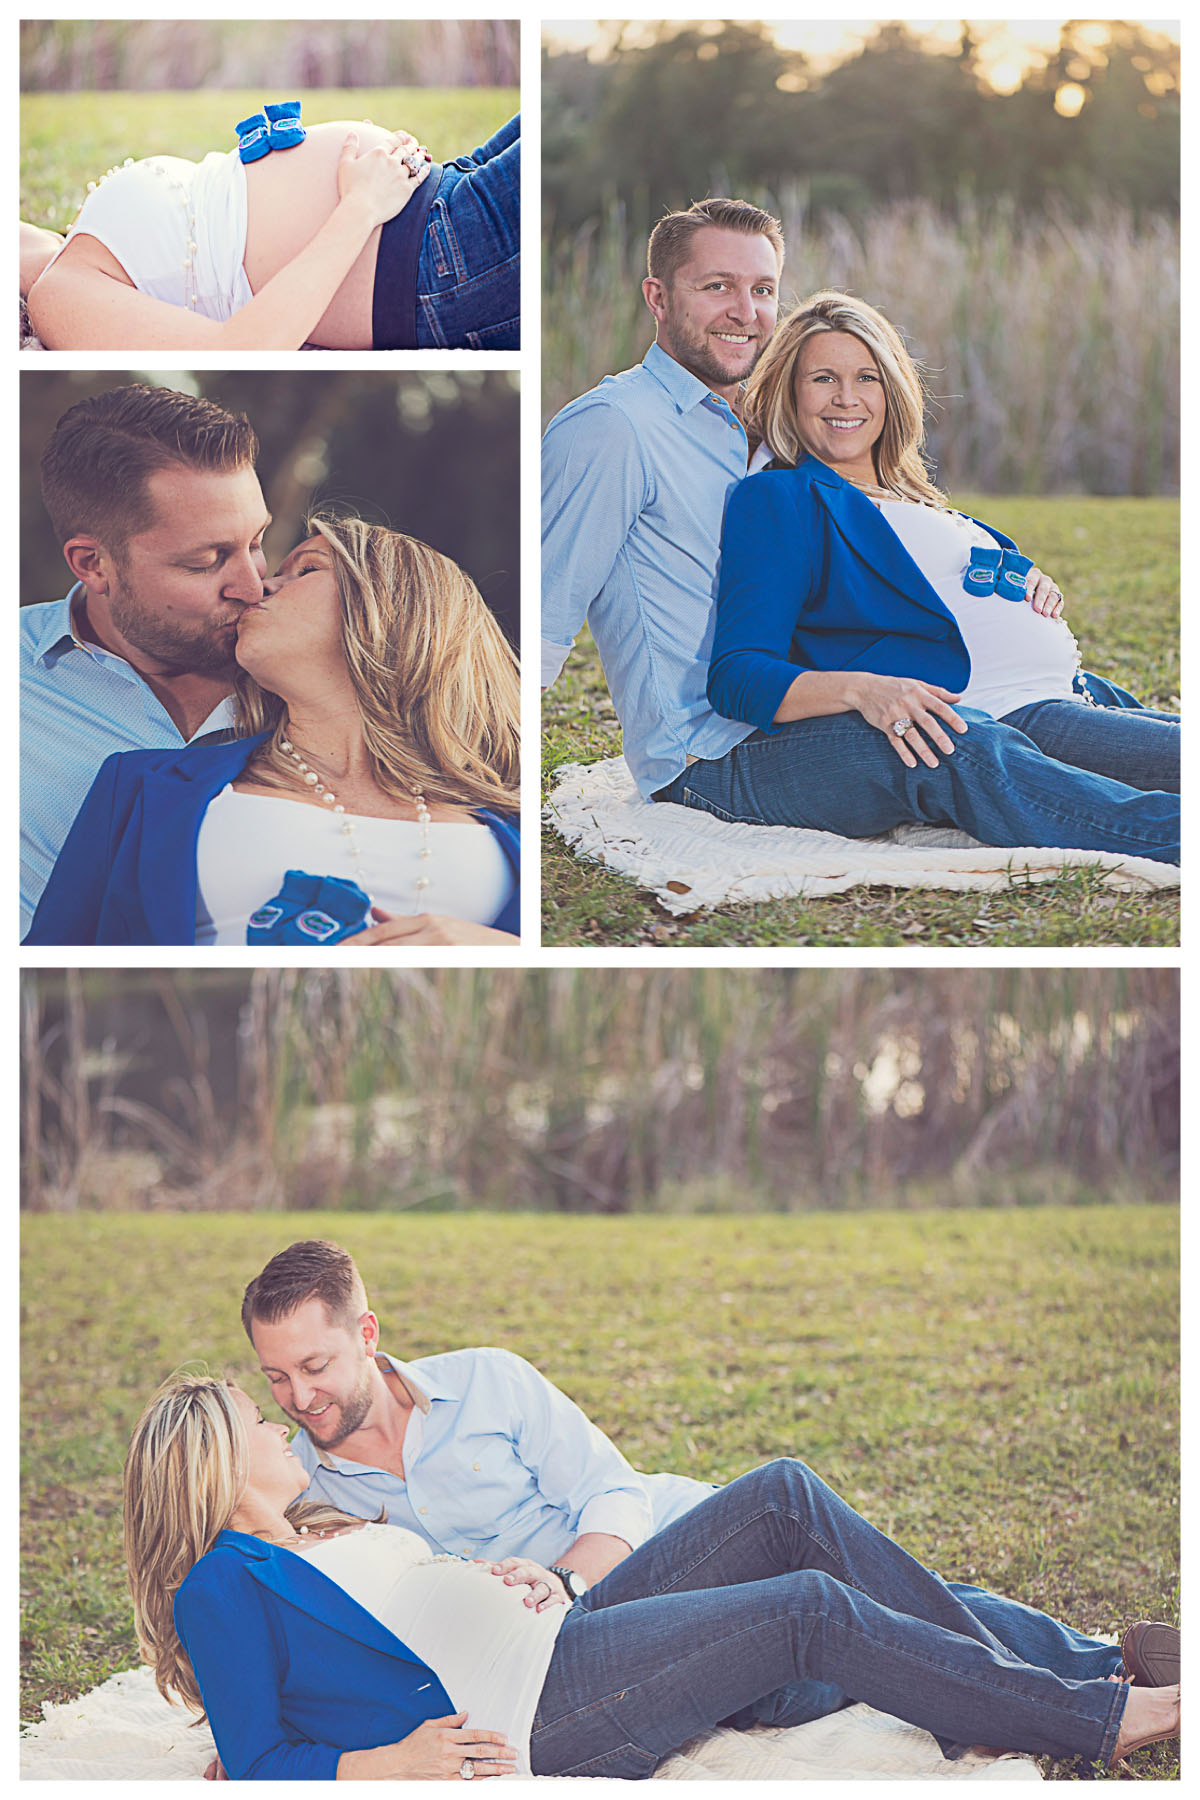 5_maternity_photographer_south_florida_mb_collage